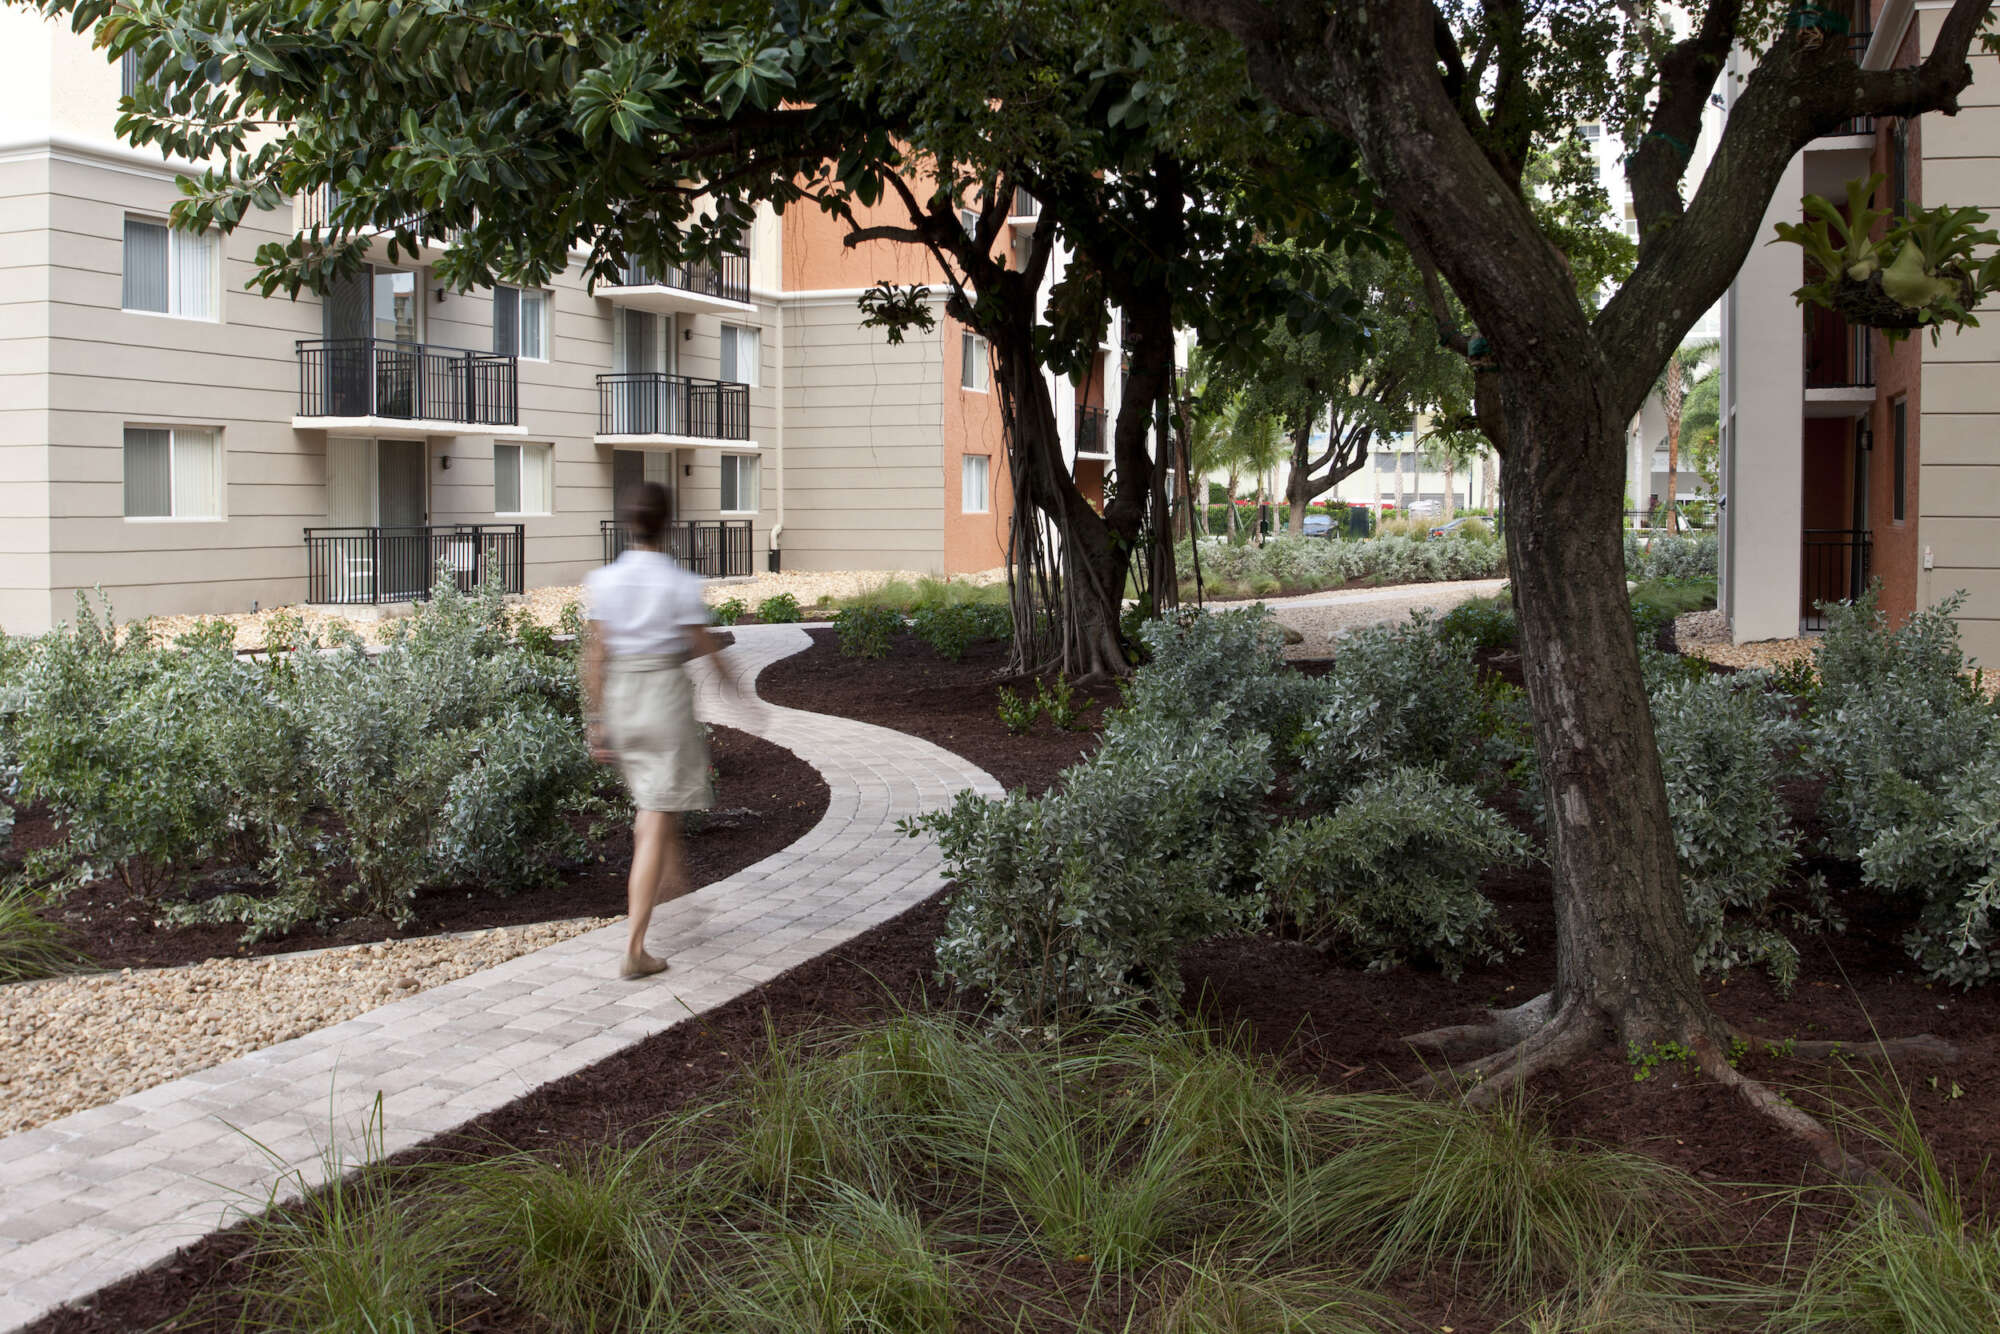 Beach Place exterior common area path with pedestrian